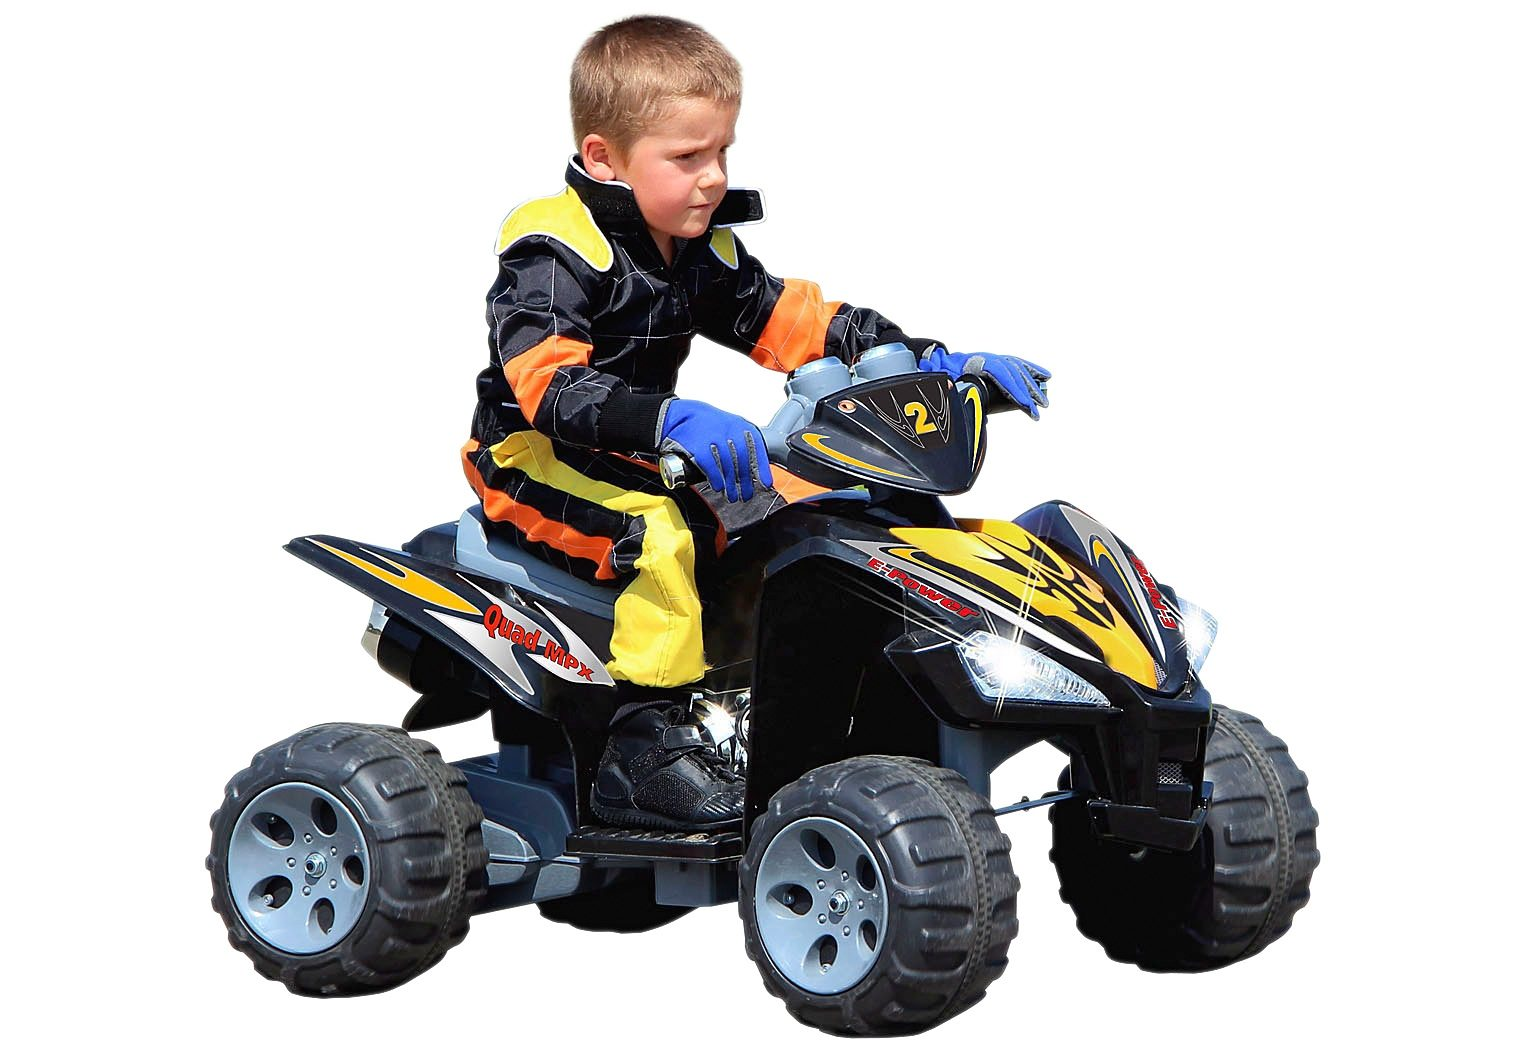 JAMARA Kinder-Fahrzeug, »JAMARA KIDS Ride-On Quad«